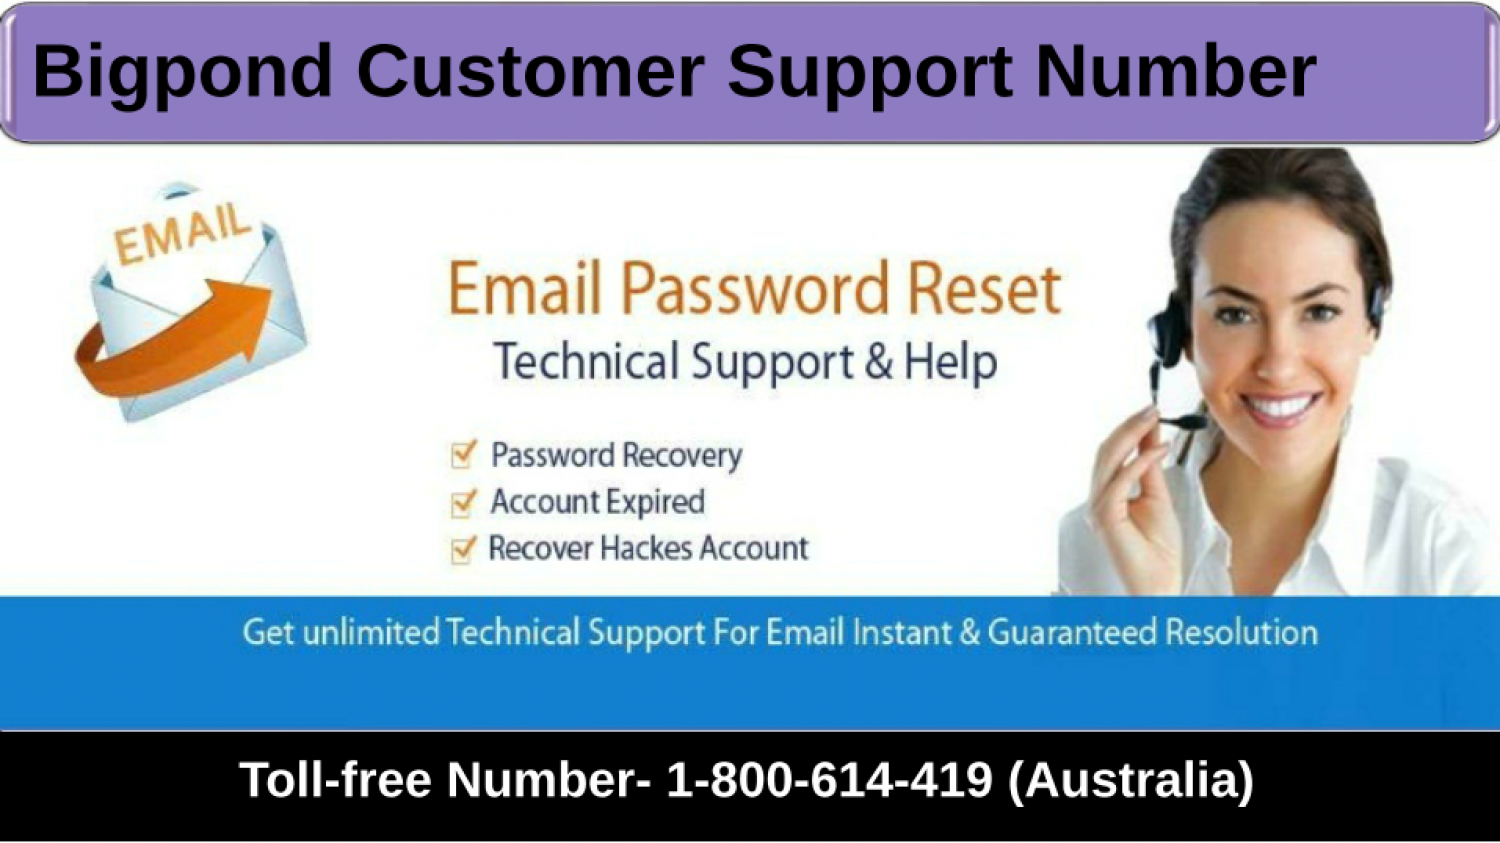 Pin by Mia Taylor on Bigpond Customer Service 1800614419